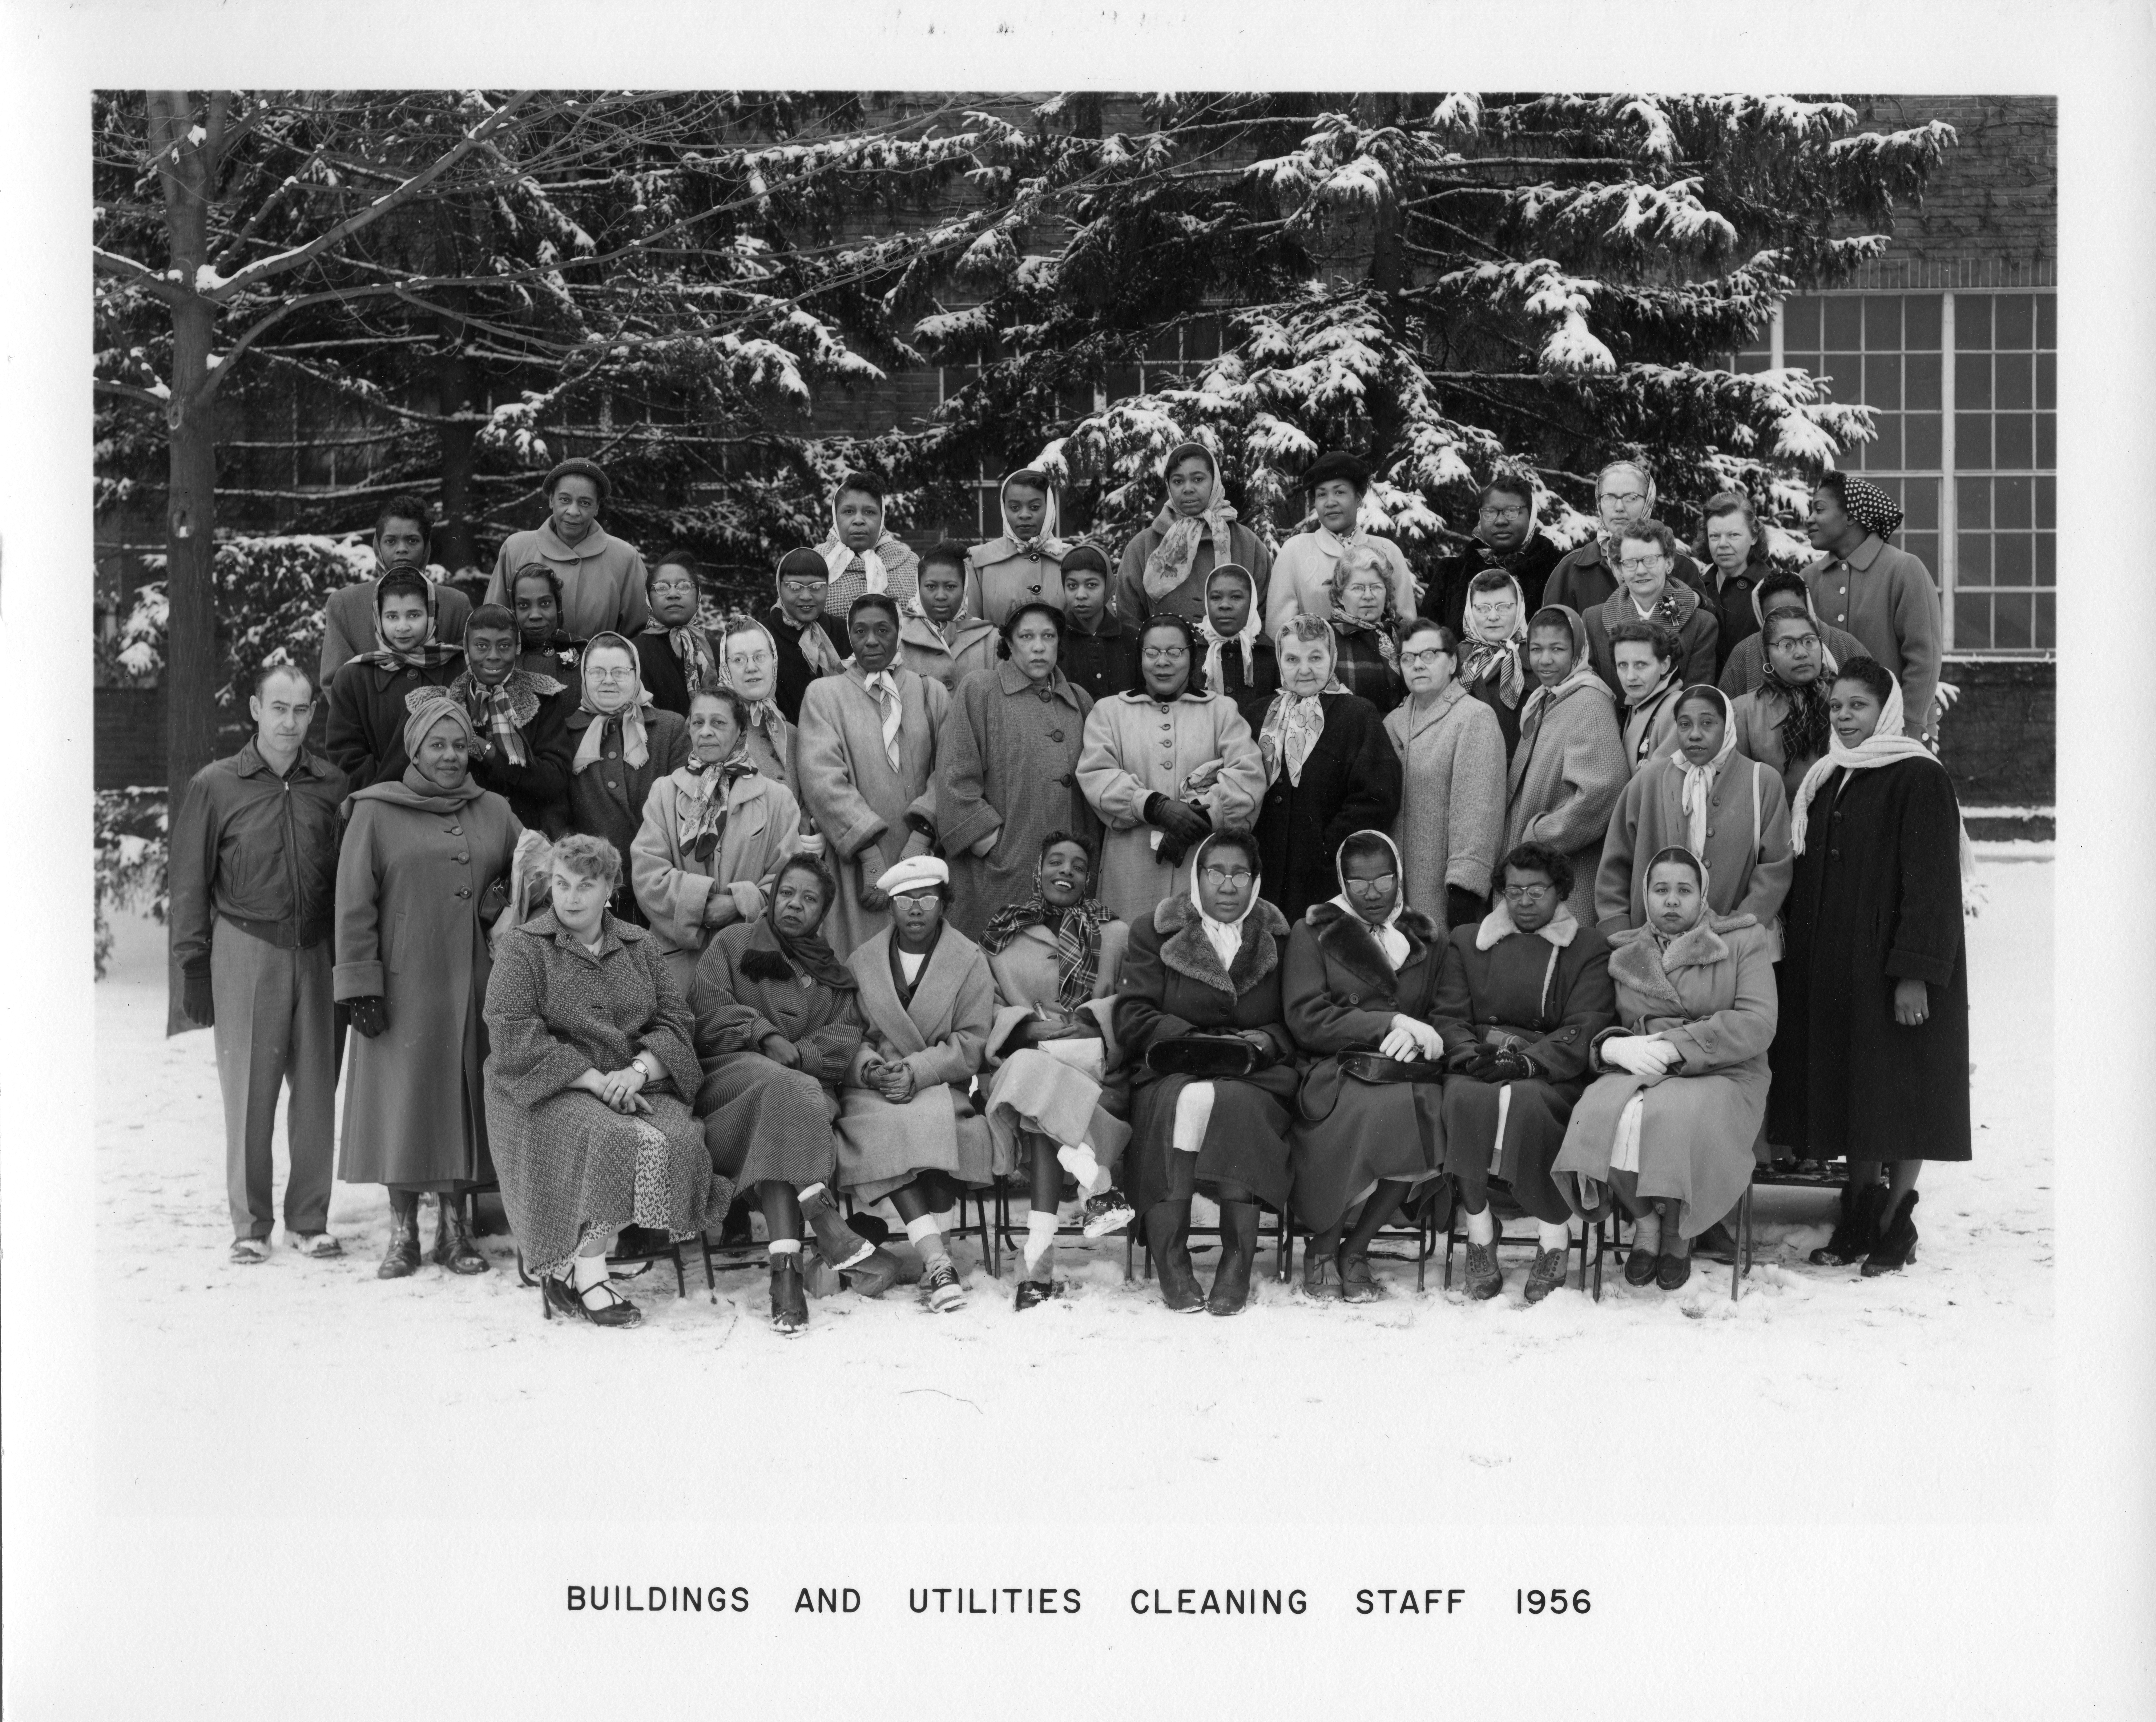 Buildings and Utilities Cleaning Staff, 1956